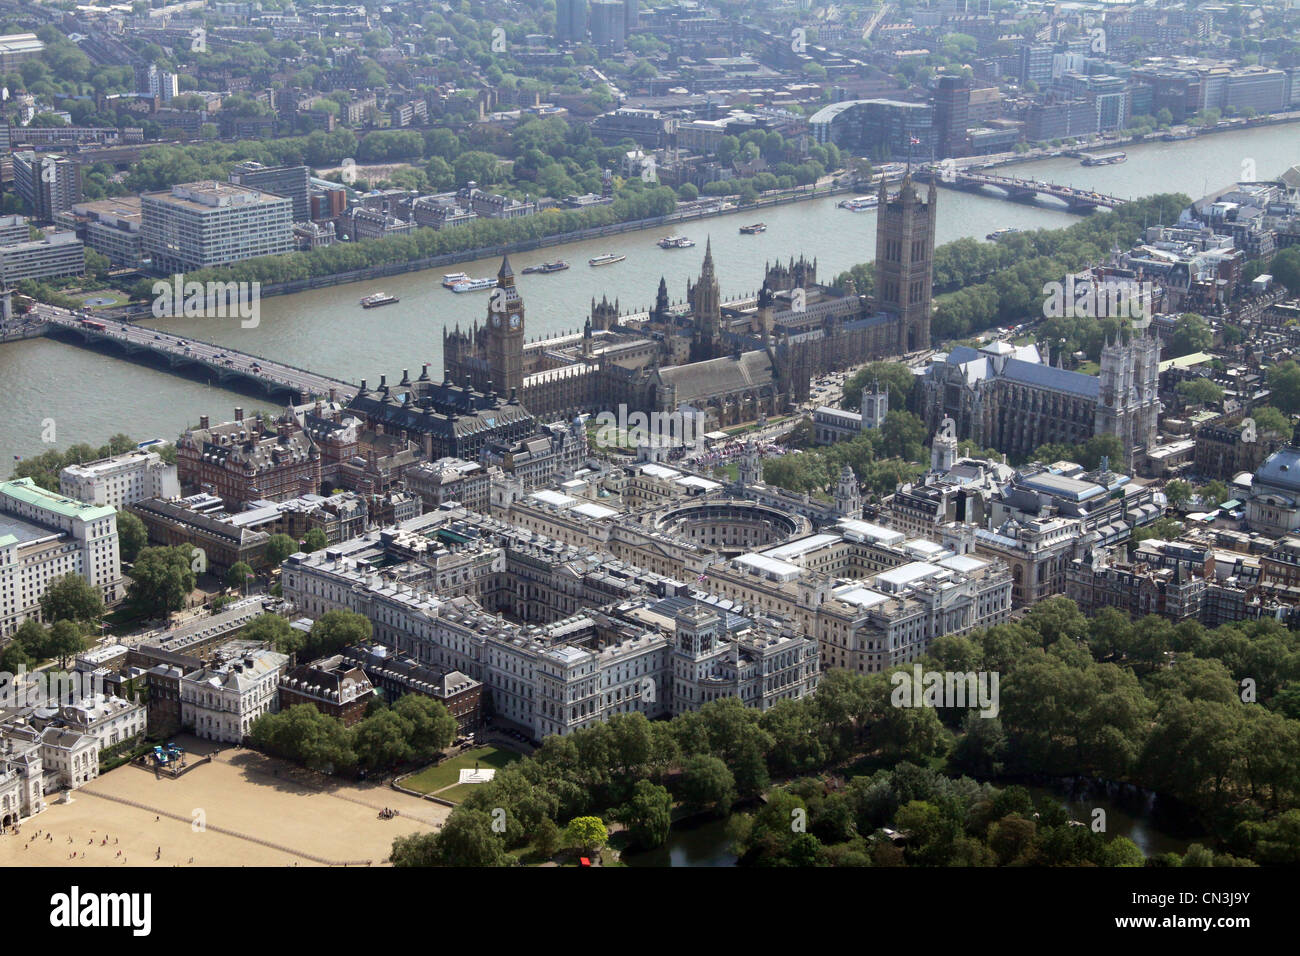 Aerial view of Treasury Buildings, The FCO, Government Offices and Houses of Parliament, London SW1 - Stock Image